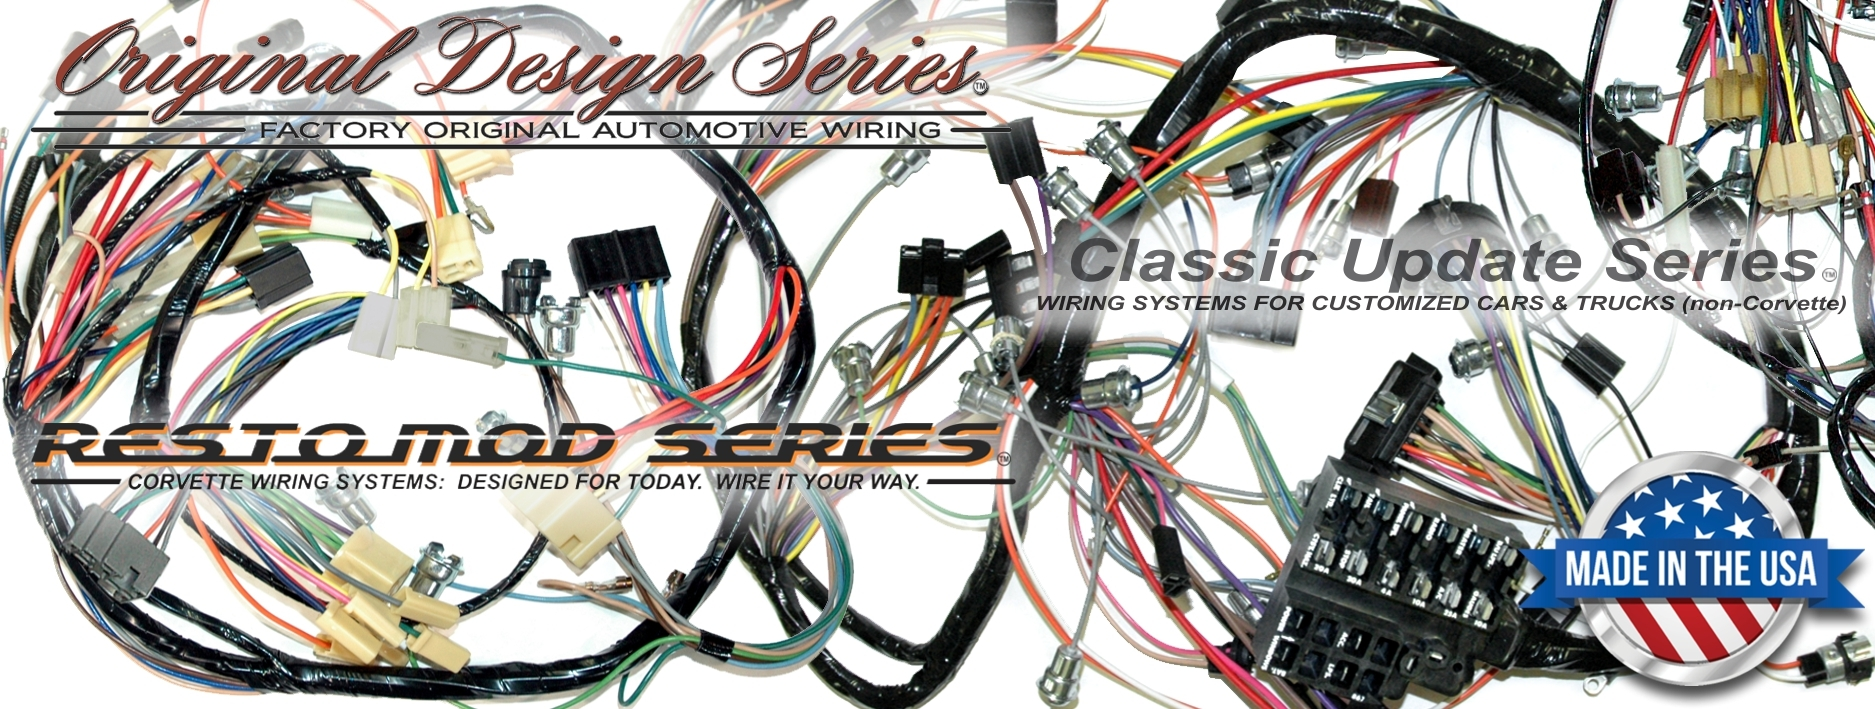 Exact Oem Reproduction Wiring Harnesses And Restomod Systems Jaguar Diagram 64 Individual Complete